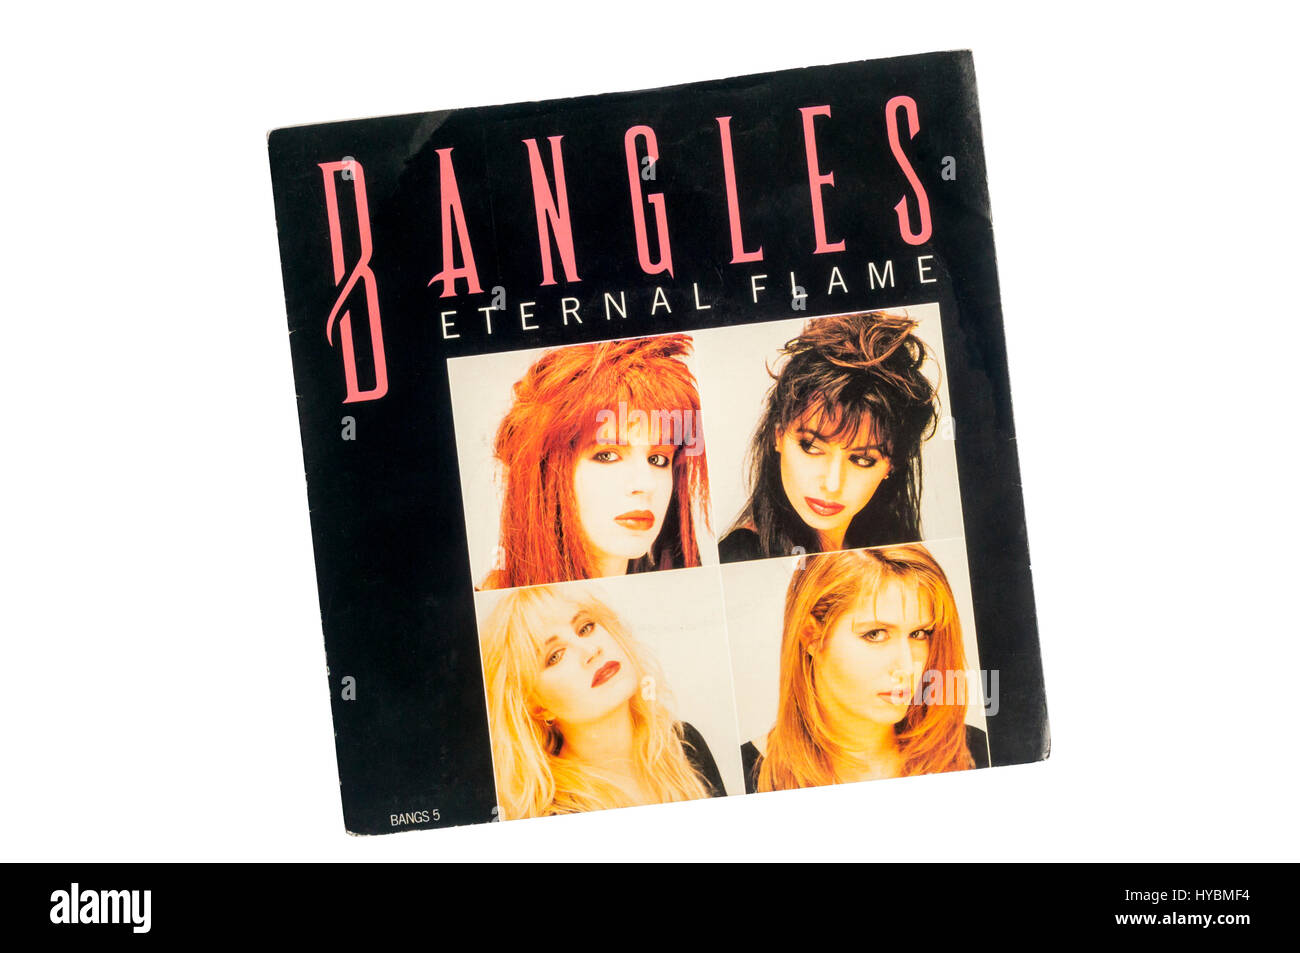 Eternal Flame was a single by American band Bangles from their album Everything.  It was released in 1988. - Stock Image